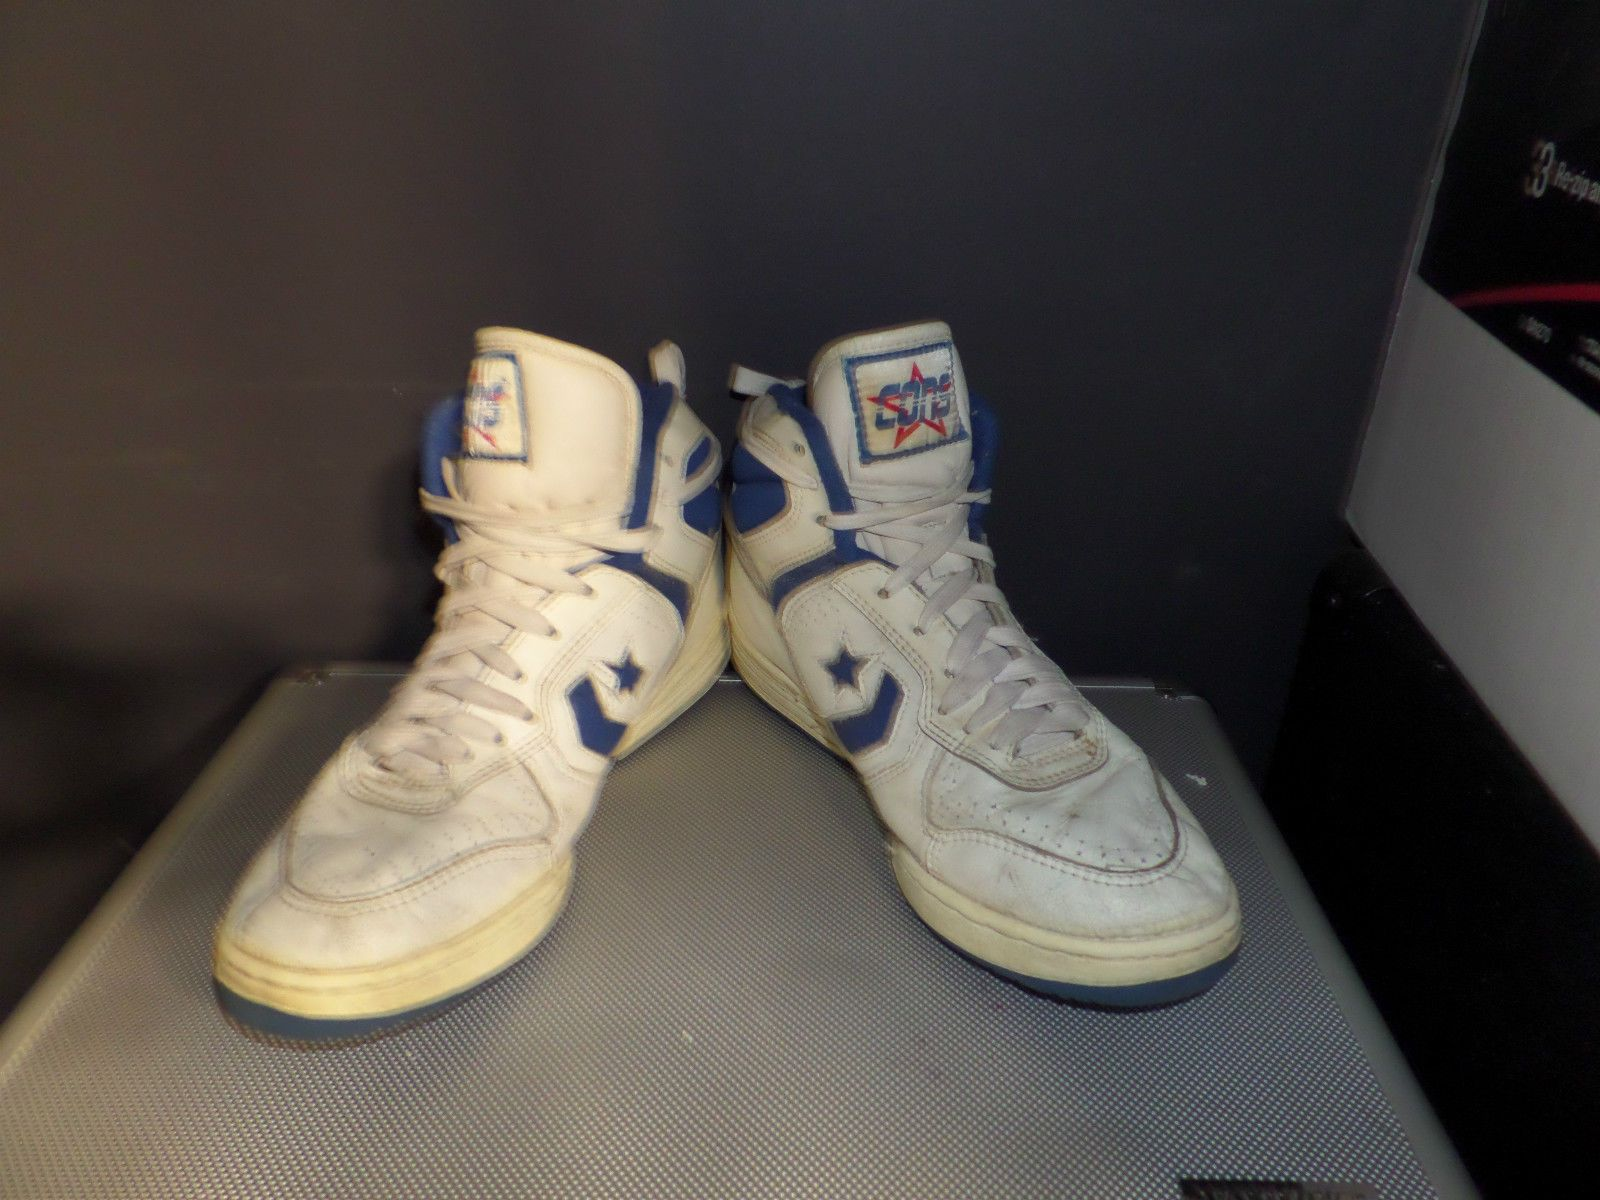 f2badd1c0ce6 Converse Shoes Vintage Deadstock Cons 8 Leather White Royal Blue 80s Size 8  5